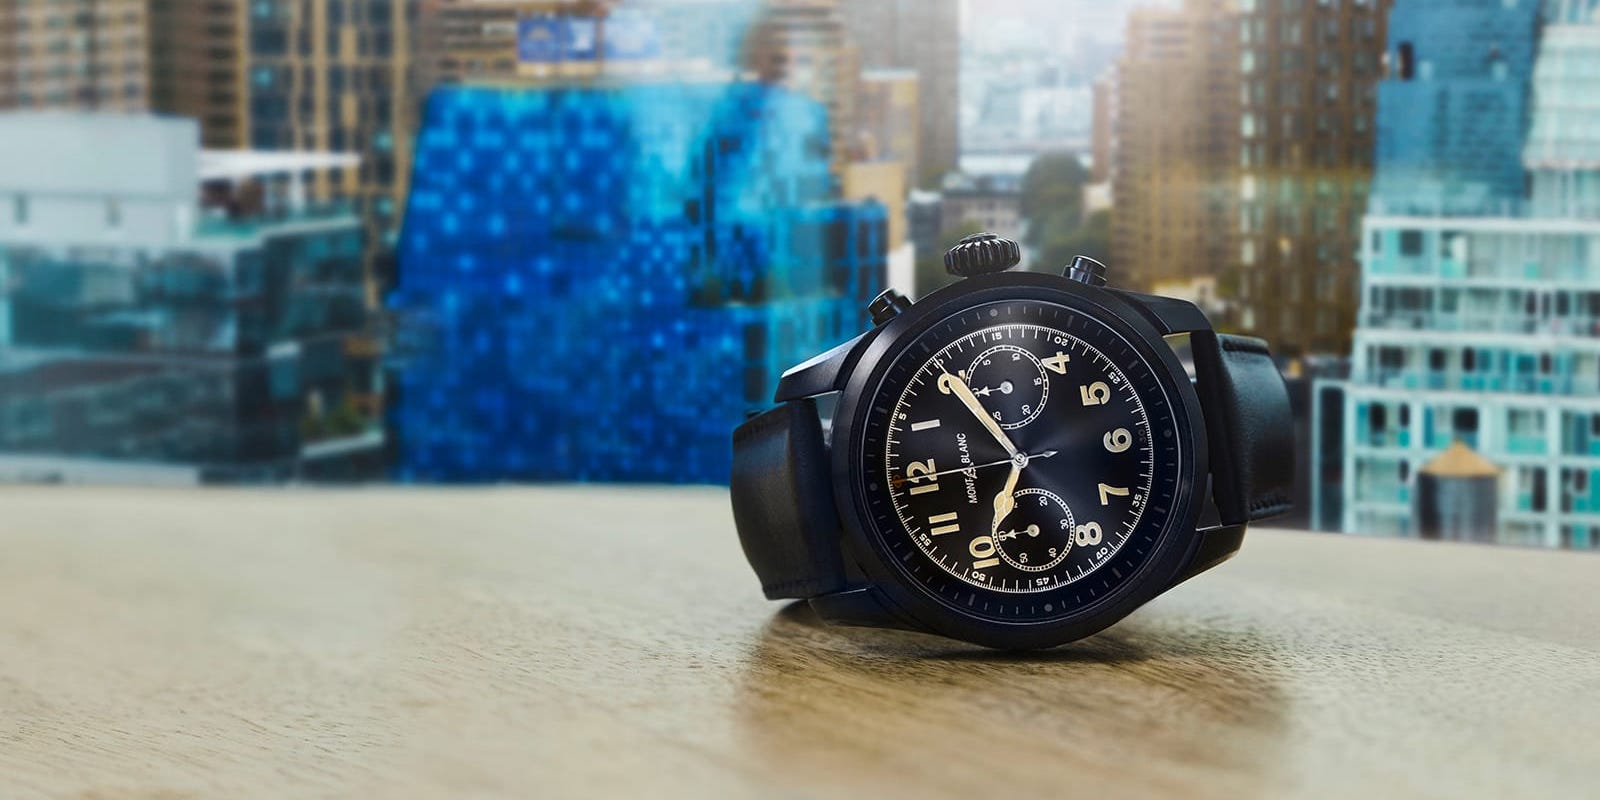 Montblanc Summit 2 is the first Wear OS watch w/ Snapdragon Wear 3100, starting at $995